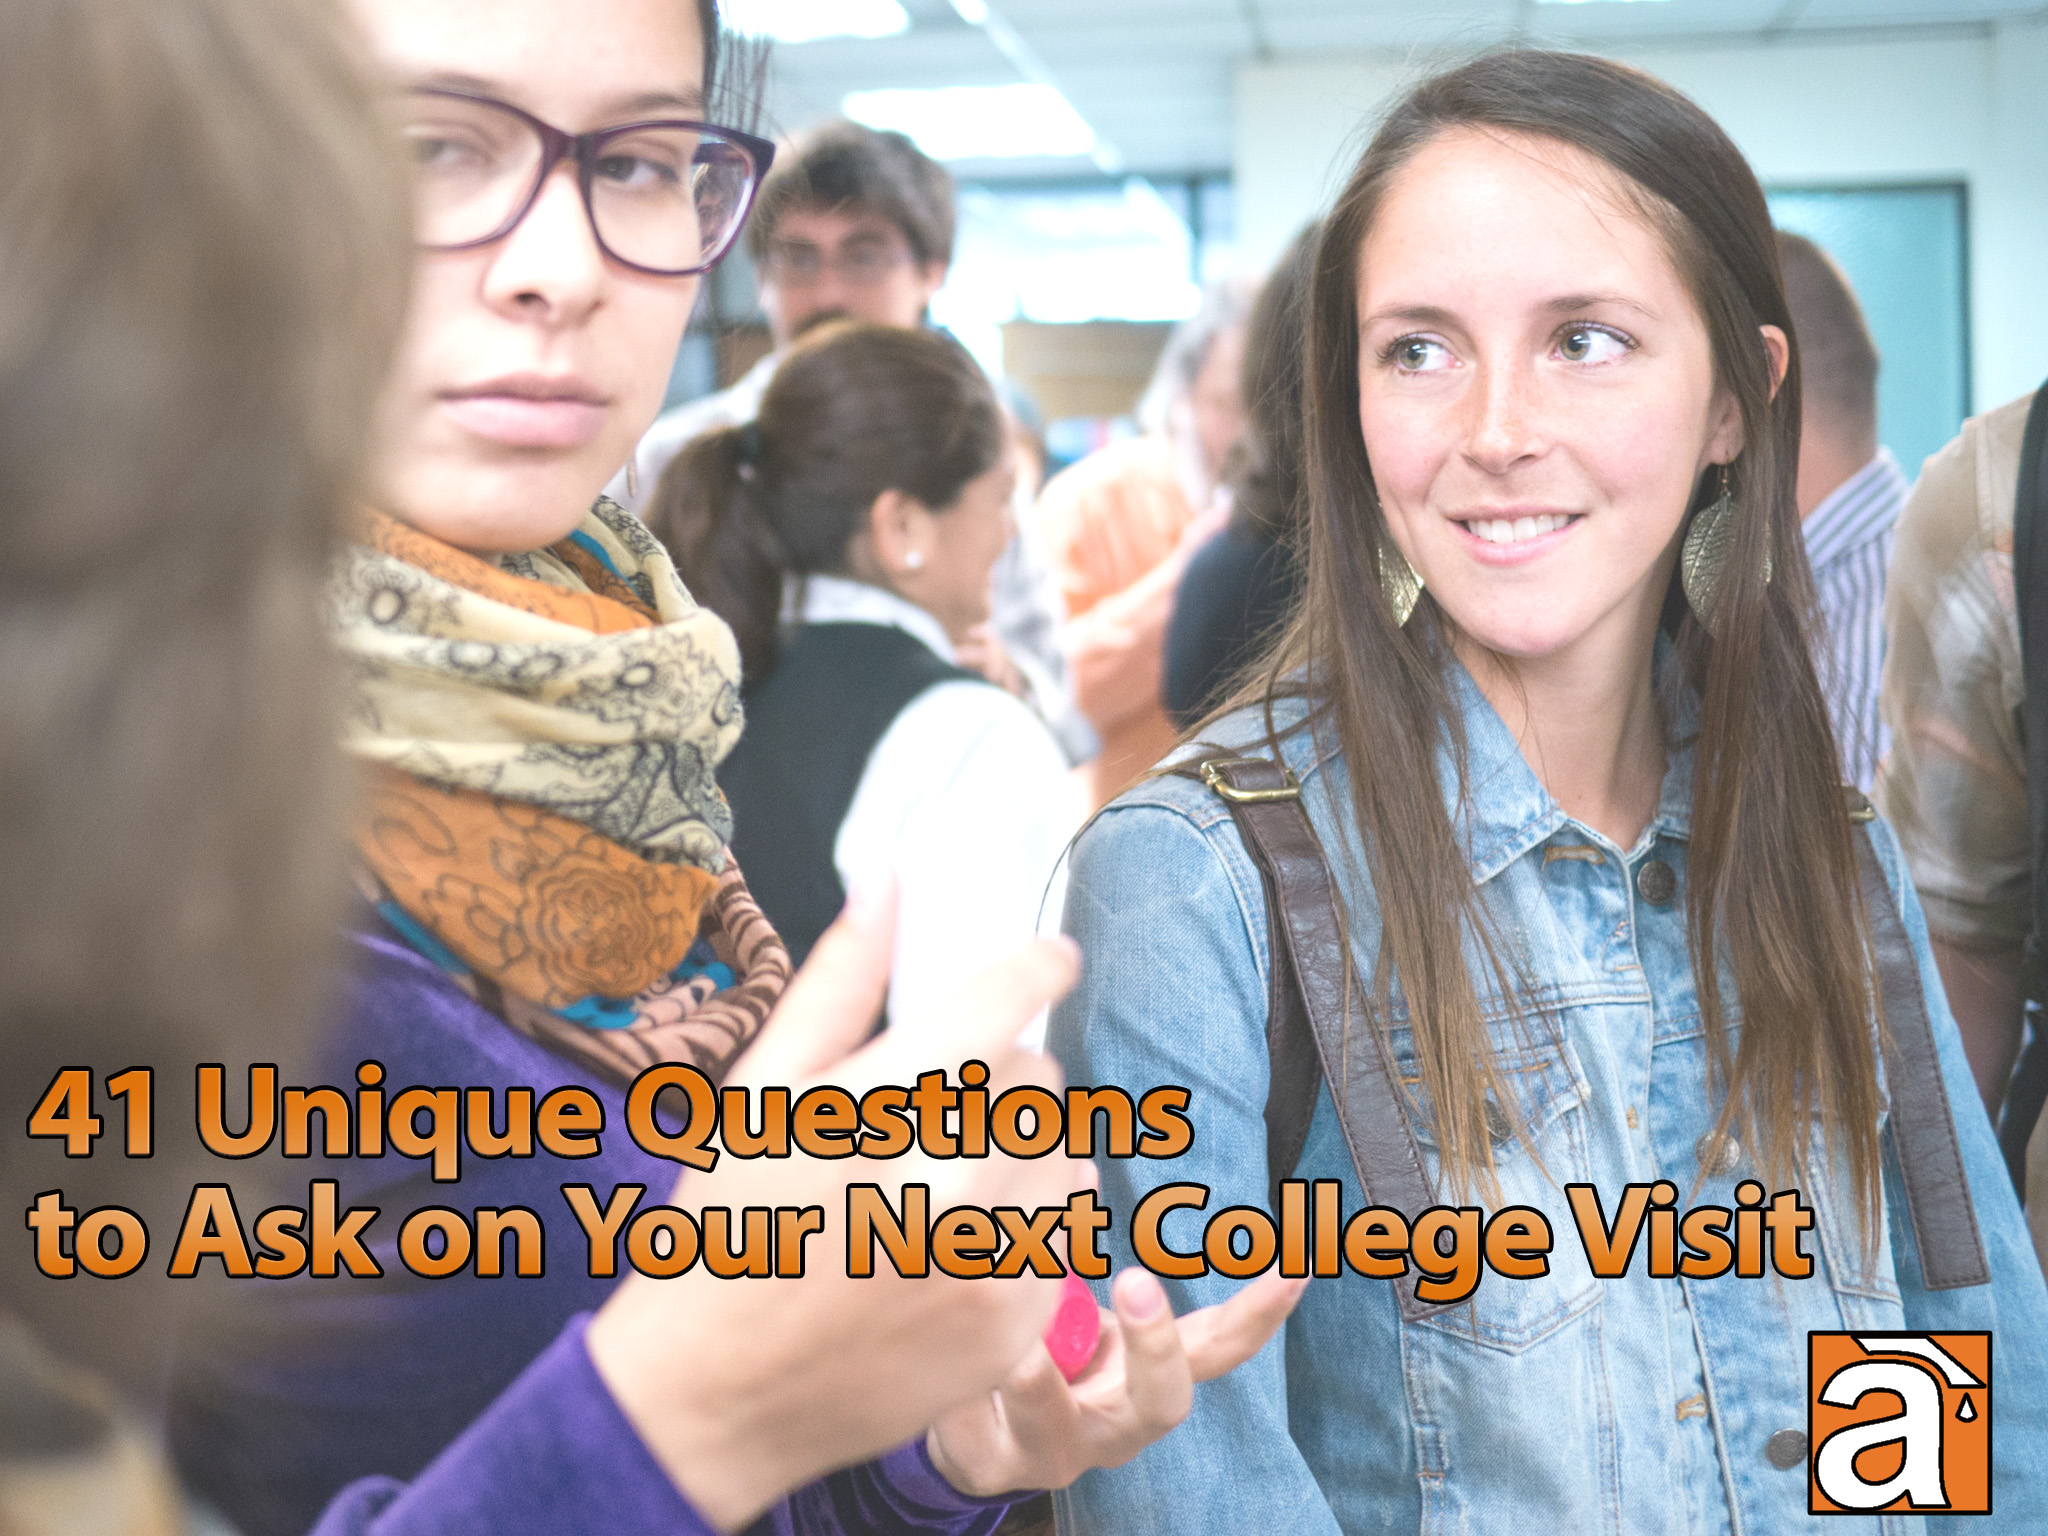 41 Unique Questions to Ask on Your Next College Visit